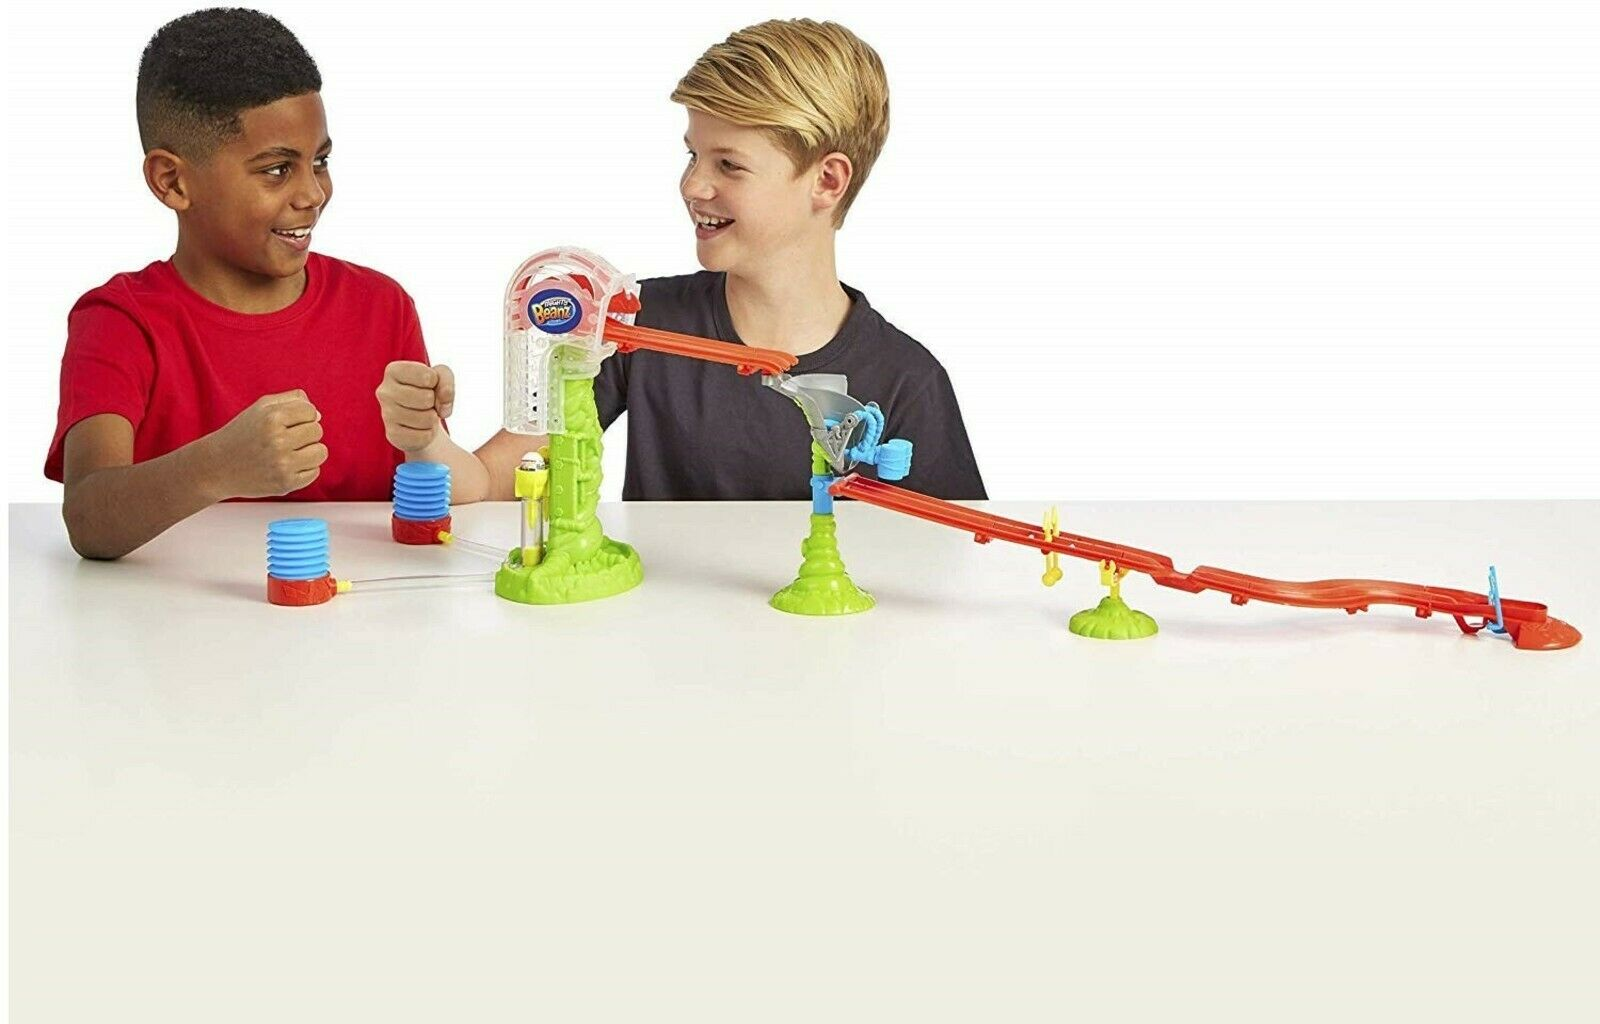 Toy Play Fight Car Ball Gift Hammer Mighty Beanz Slammer Time Race Track Ages 5